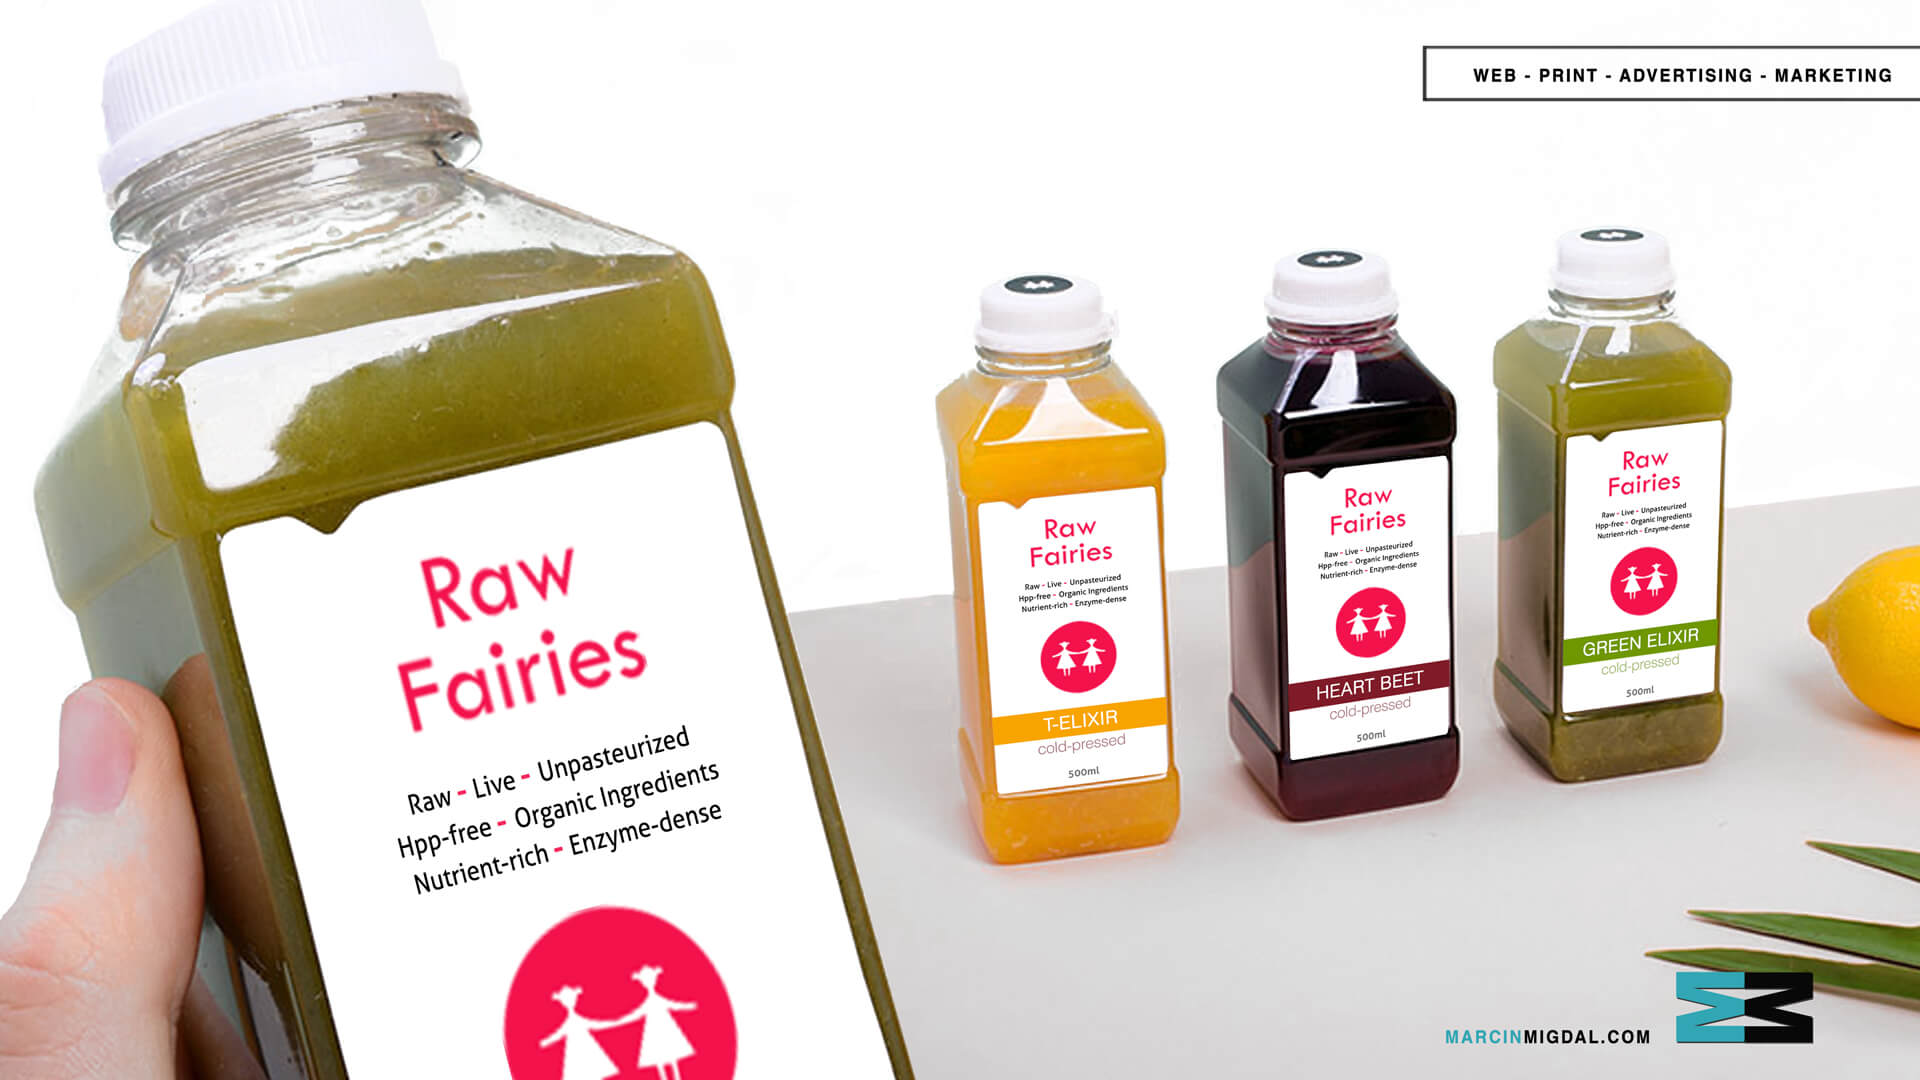 Raw Fairies - Beverage Packaging Design by Marcin Migdal